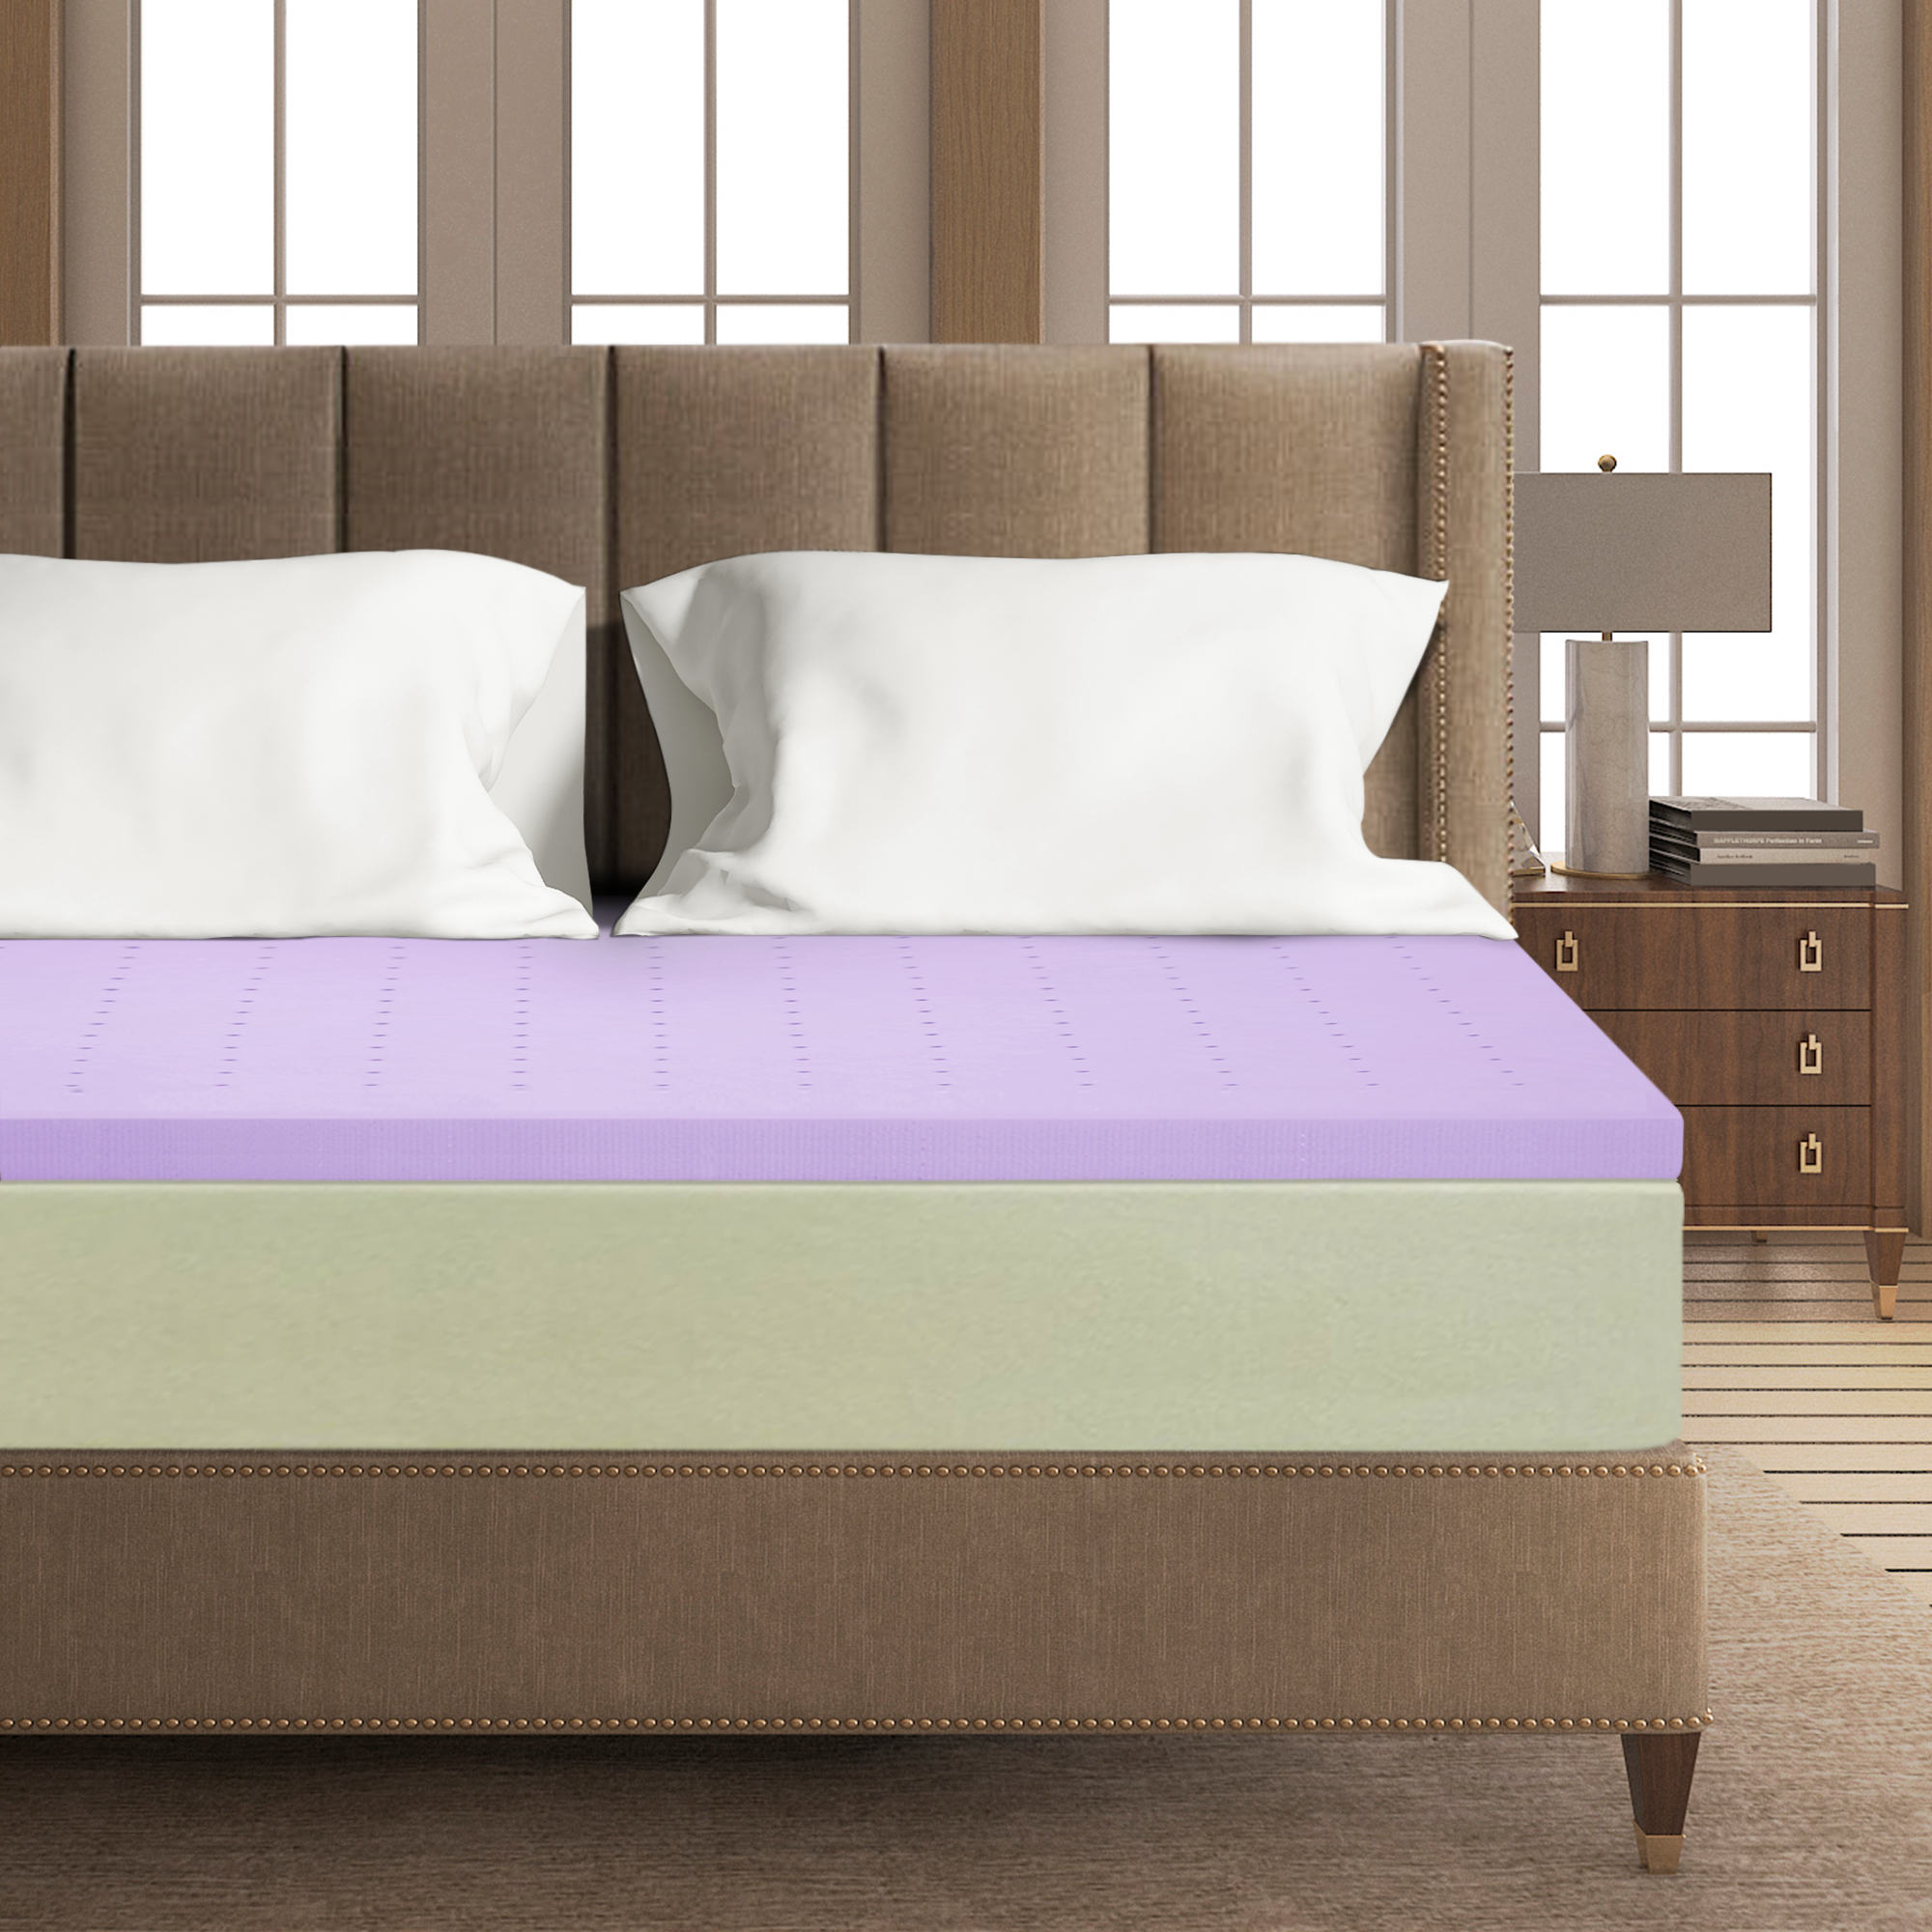 Best Price Mattress 2 Inch Lavender Memory Foam Mattress Topper